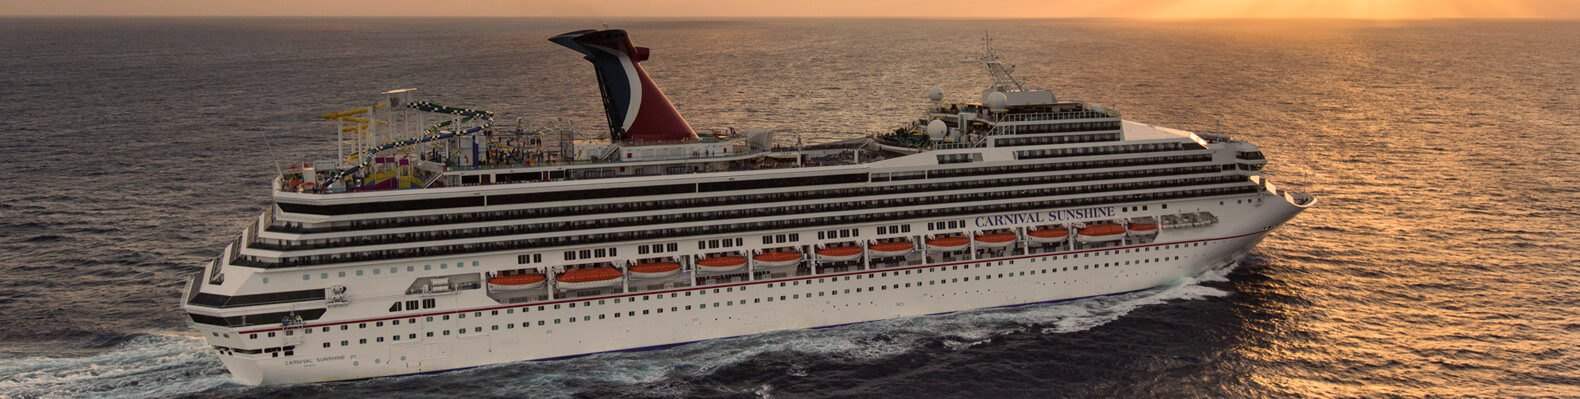 Carnival cruise ship on the ocean at sunset